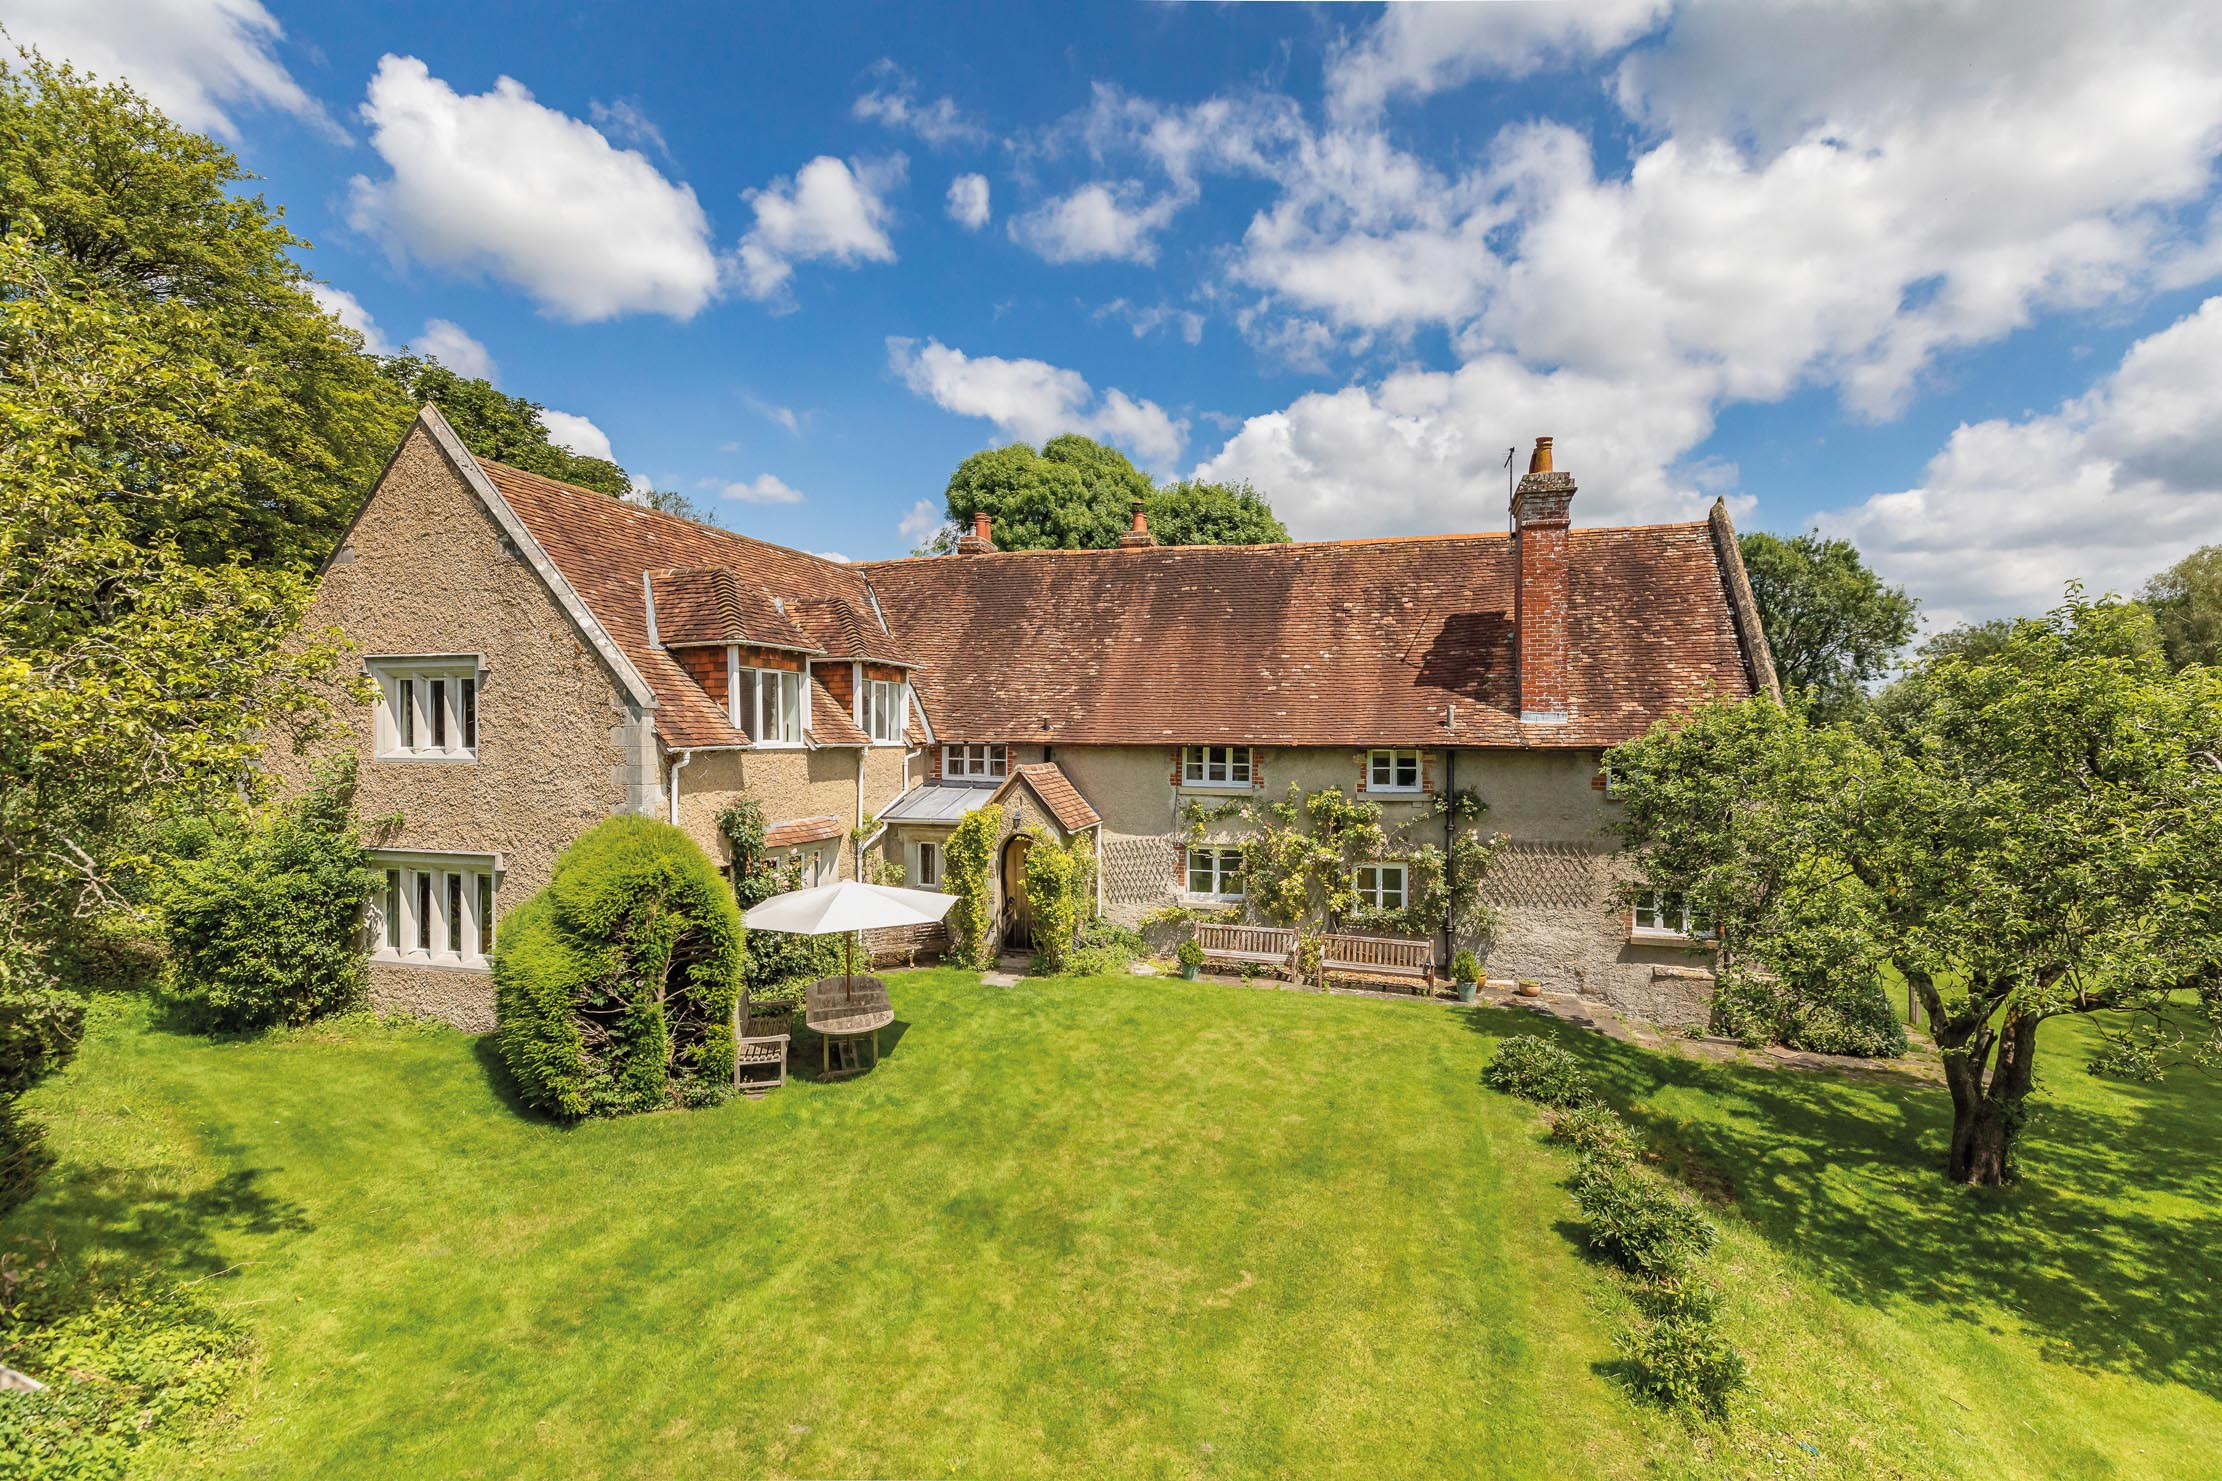 A gorgeous, 16th century property for sale in Hampshire up for sale for the first time in 65 years - Country Life